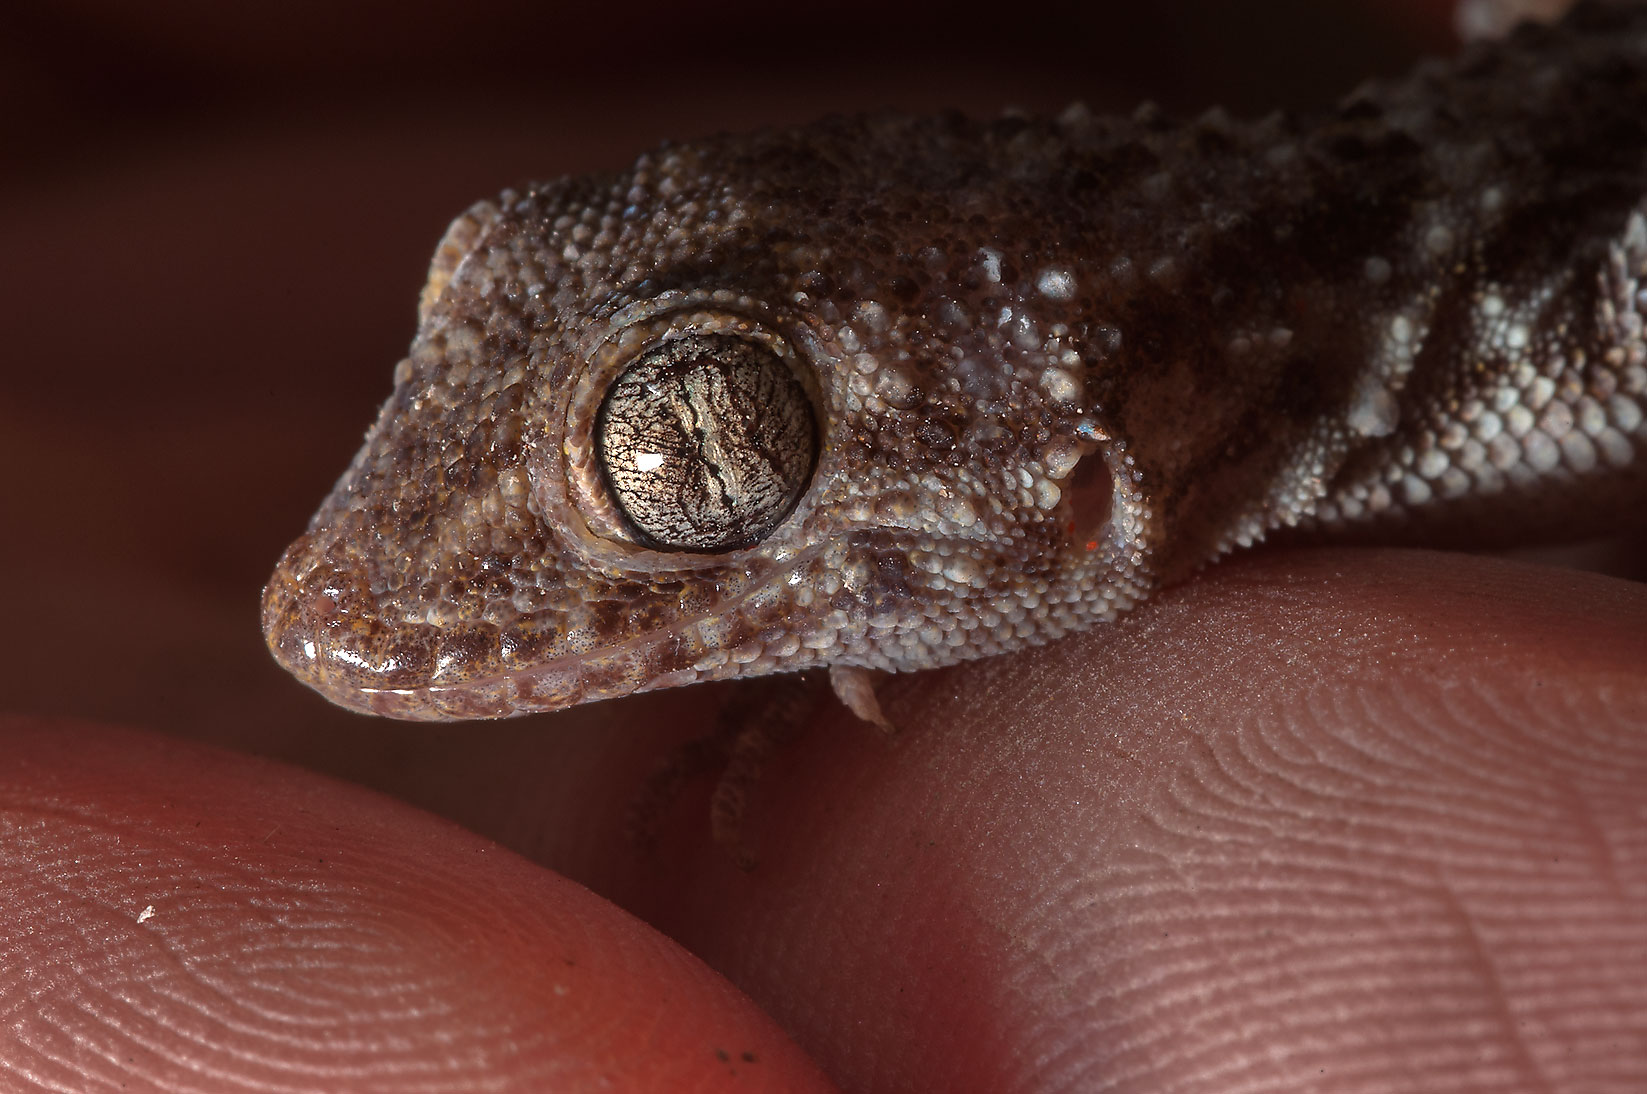 Head of rough-tailed bowfoot gecko lizard...Haloul Island (Jazirat Halul). Qatar